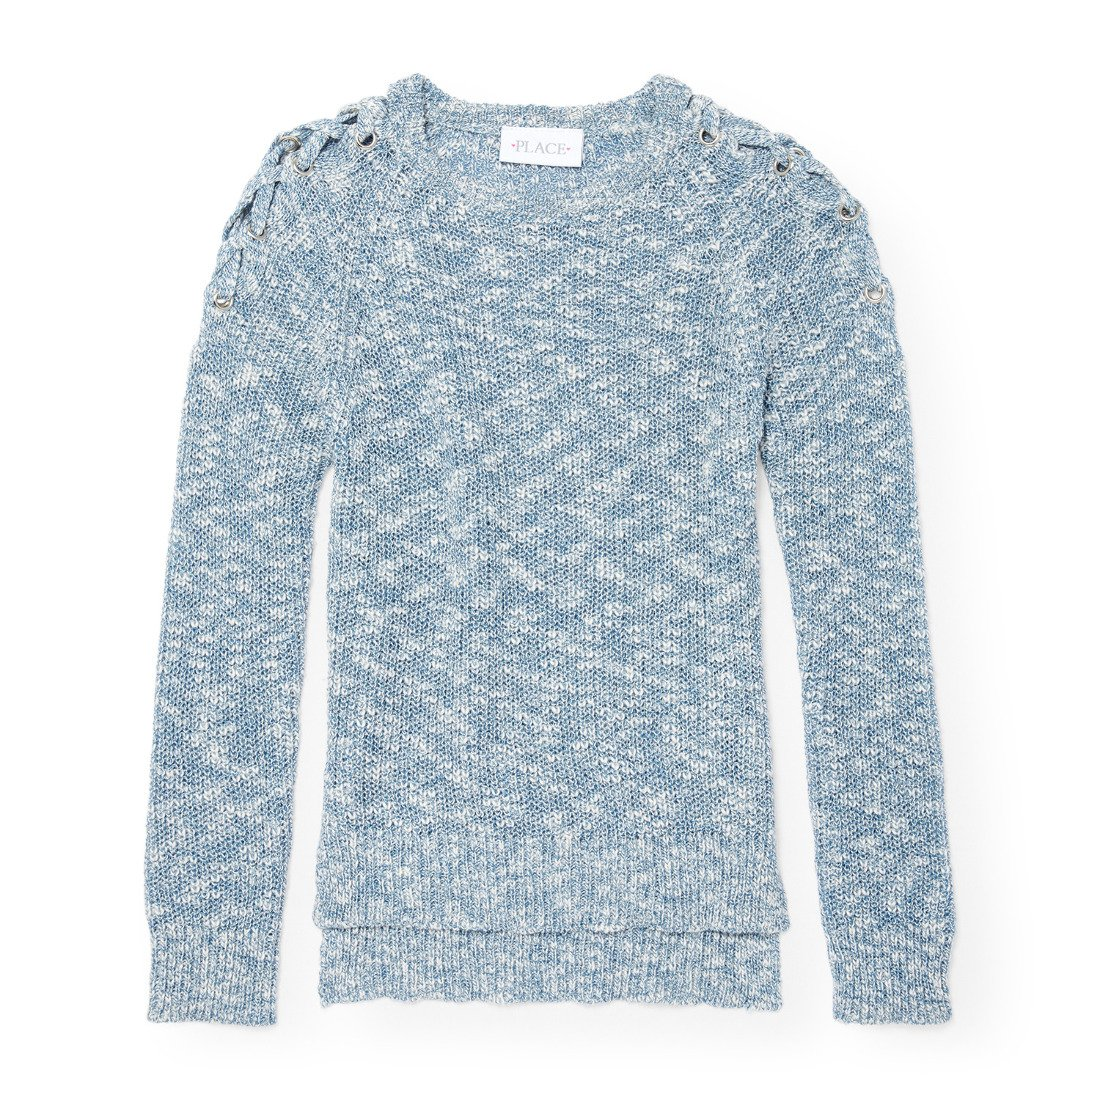 The Childrens Place Girls Sweater